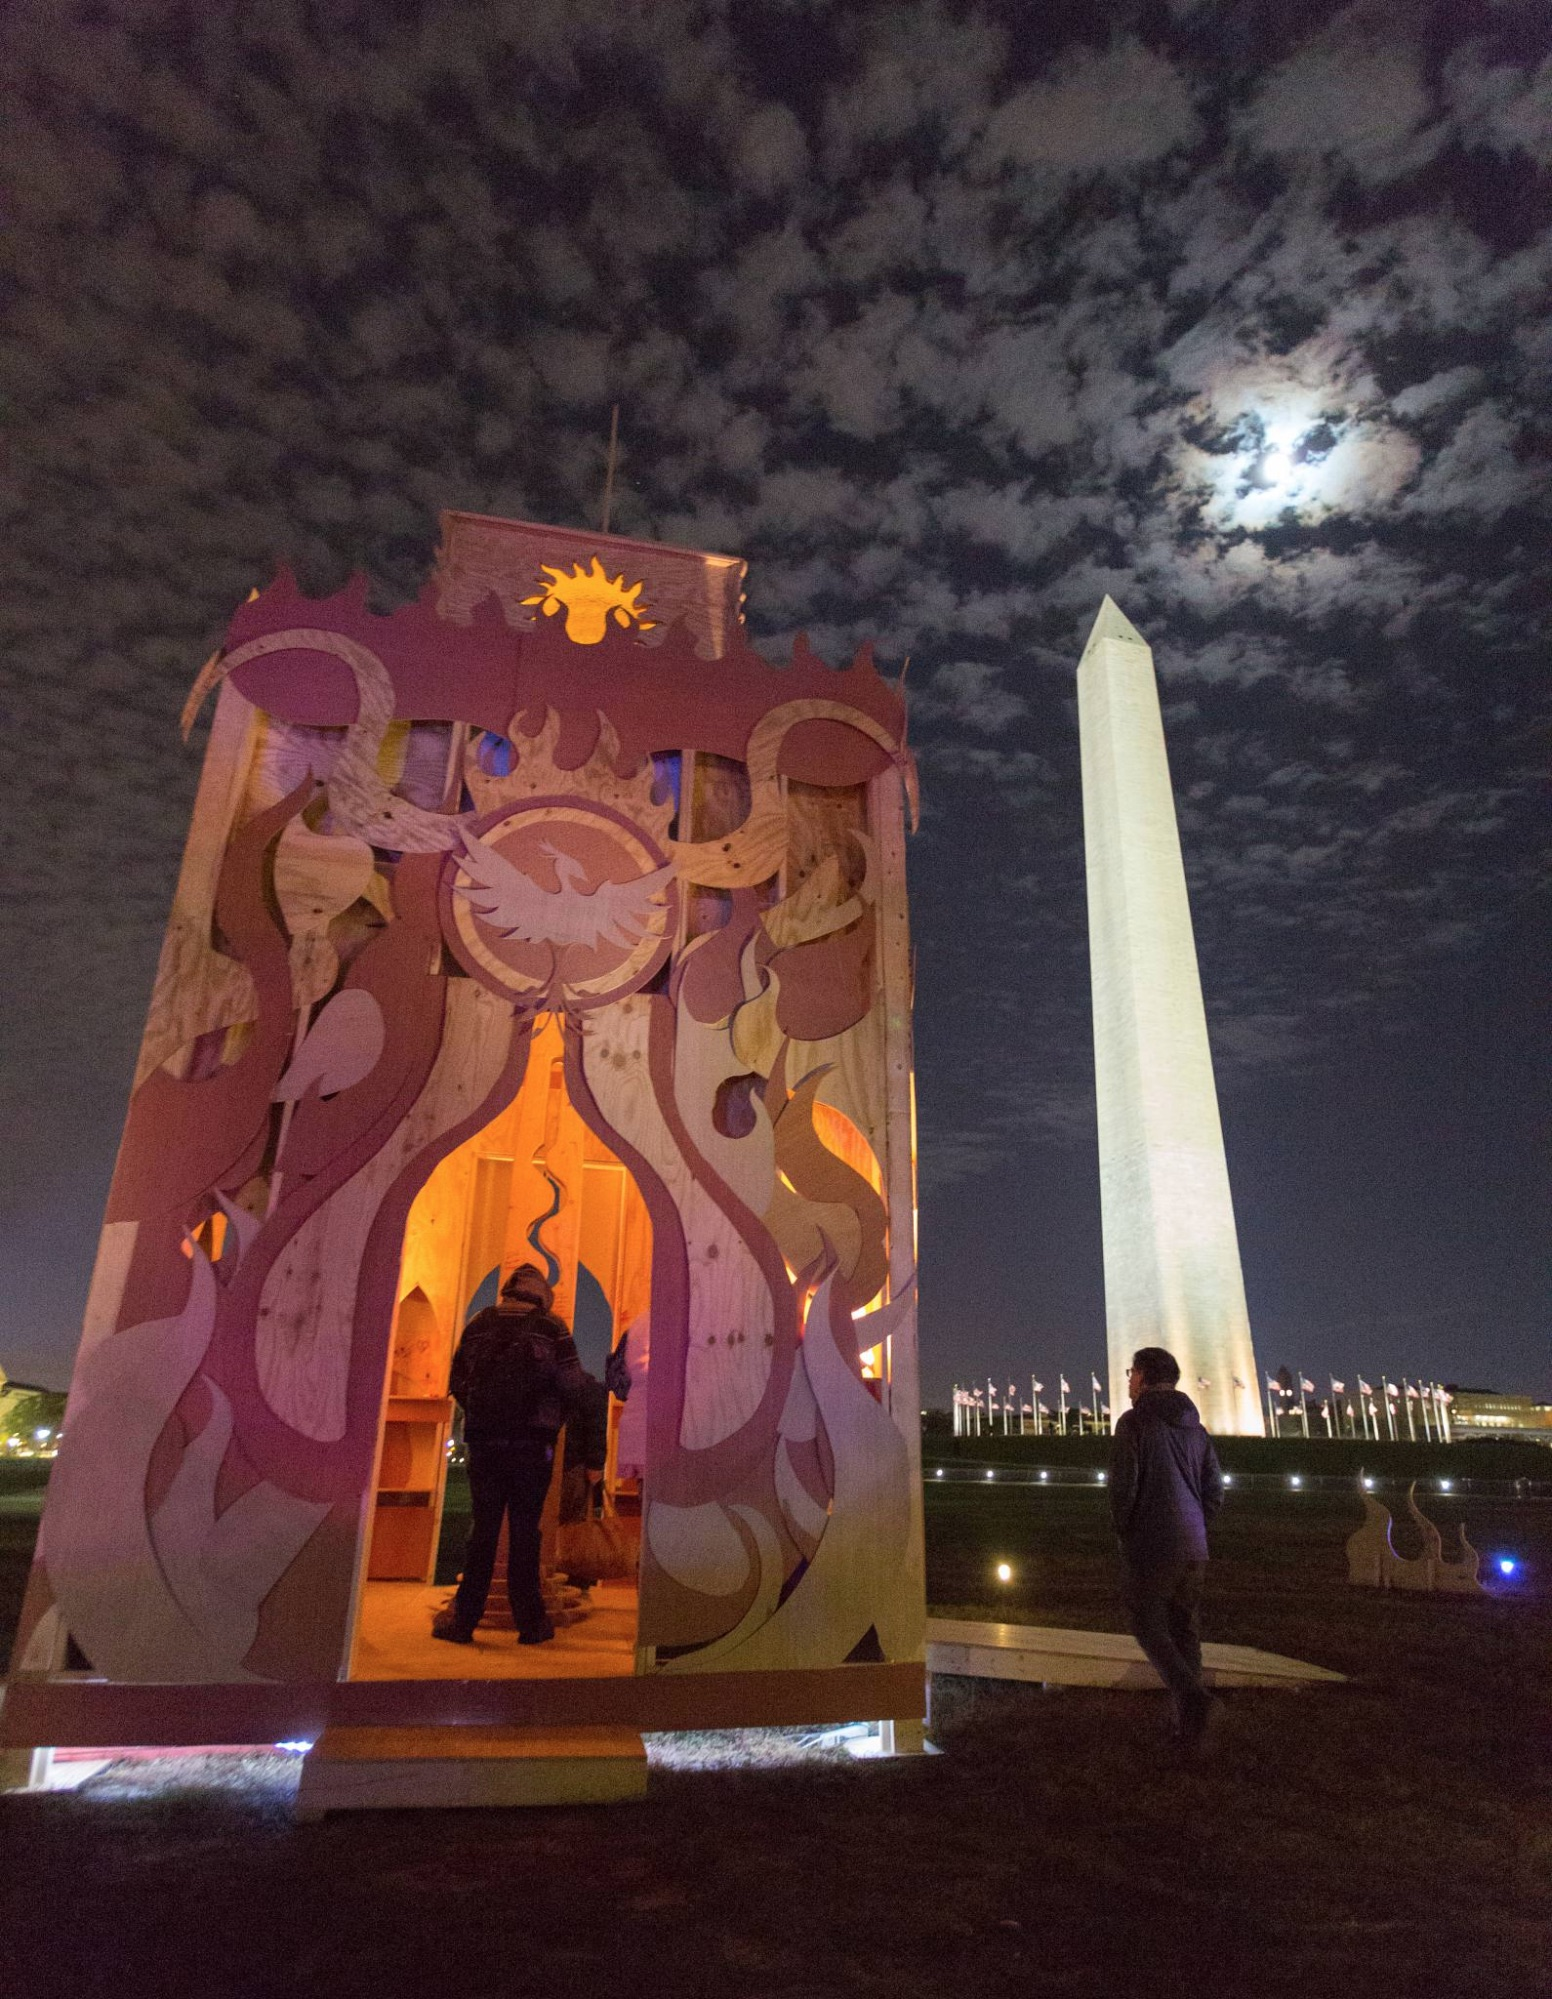 """Michael Verdon also created """"The Temple of Rebirth"""". The 30-foot-tall structure gave us a space for personal and collective healing and will burn in a future event. (PhotobyKris Northern)"""